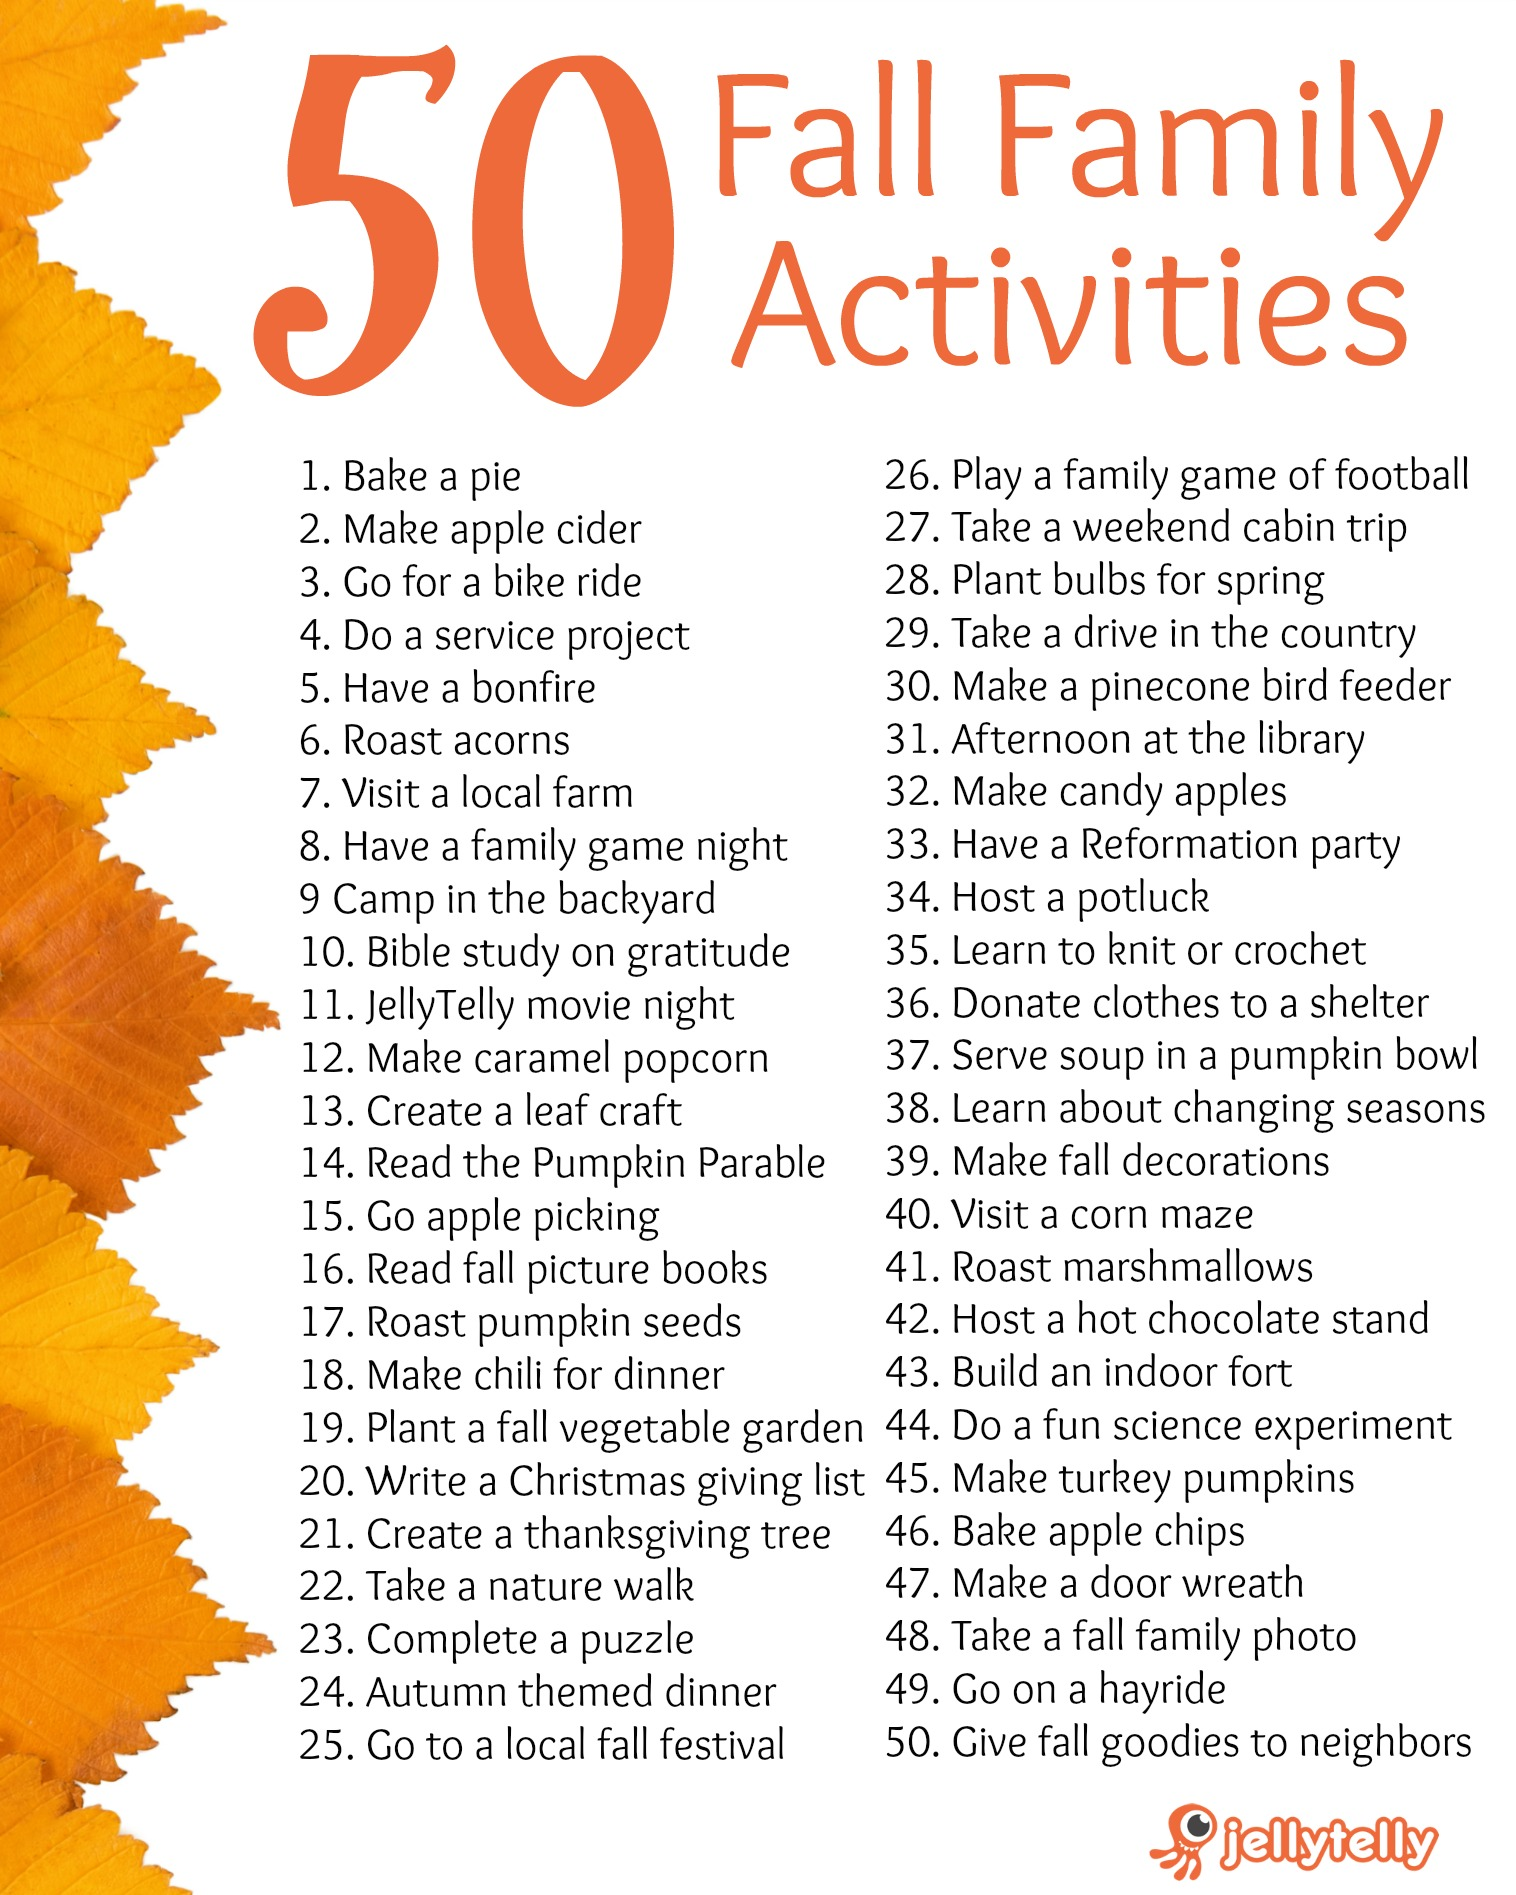 50 Fall Family Activities (+ Free Printable!) | Jellytelly Parents